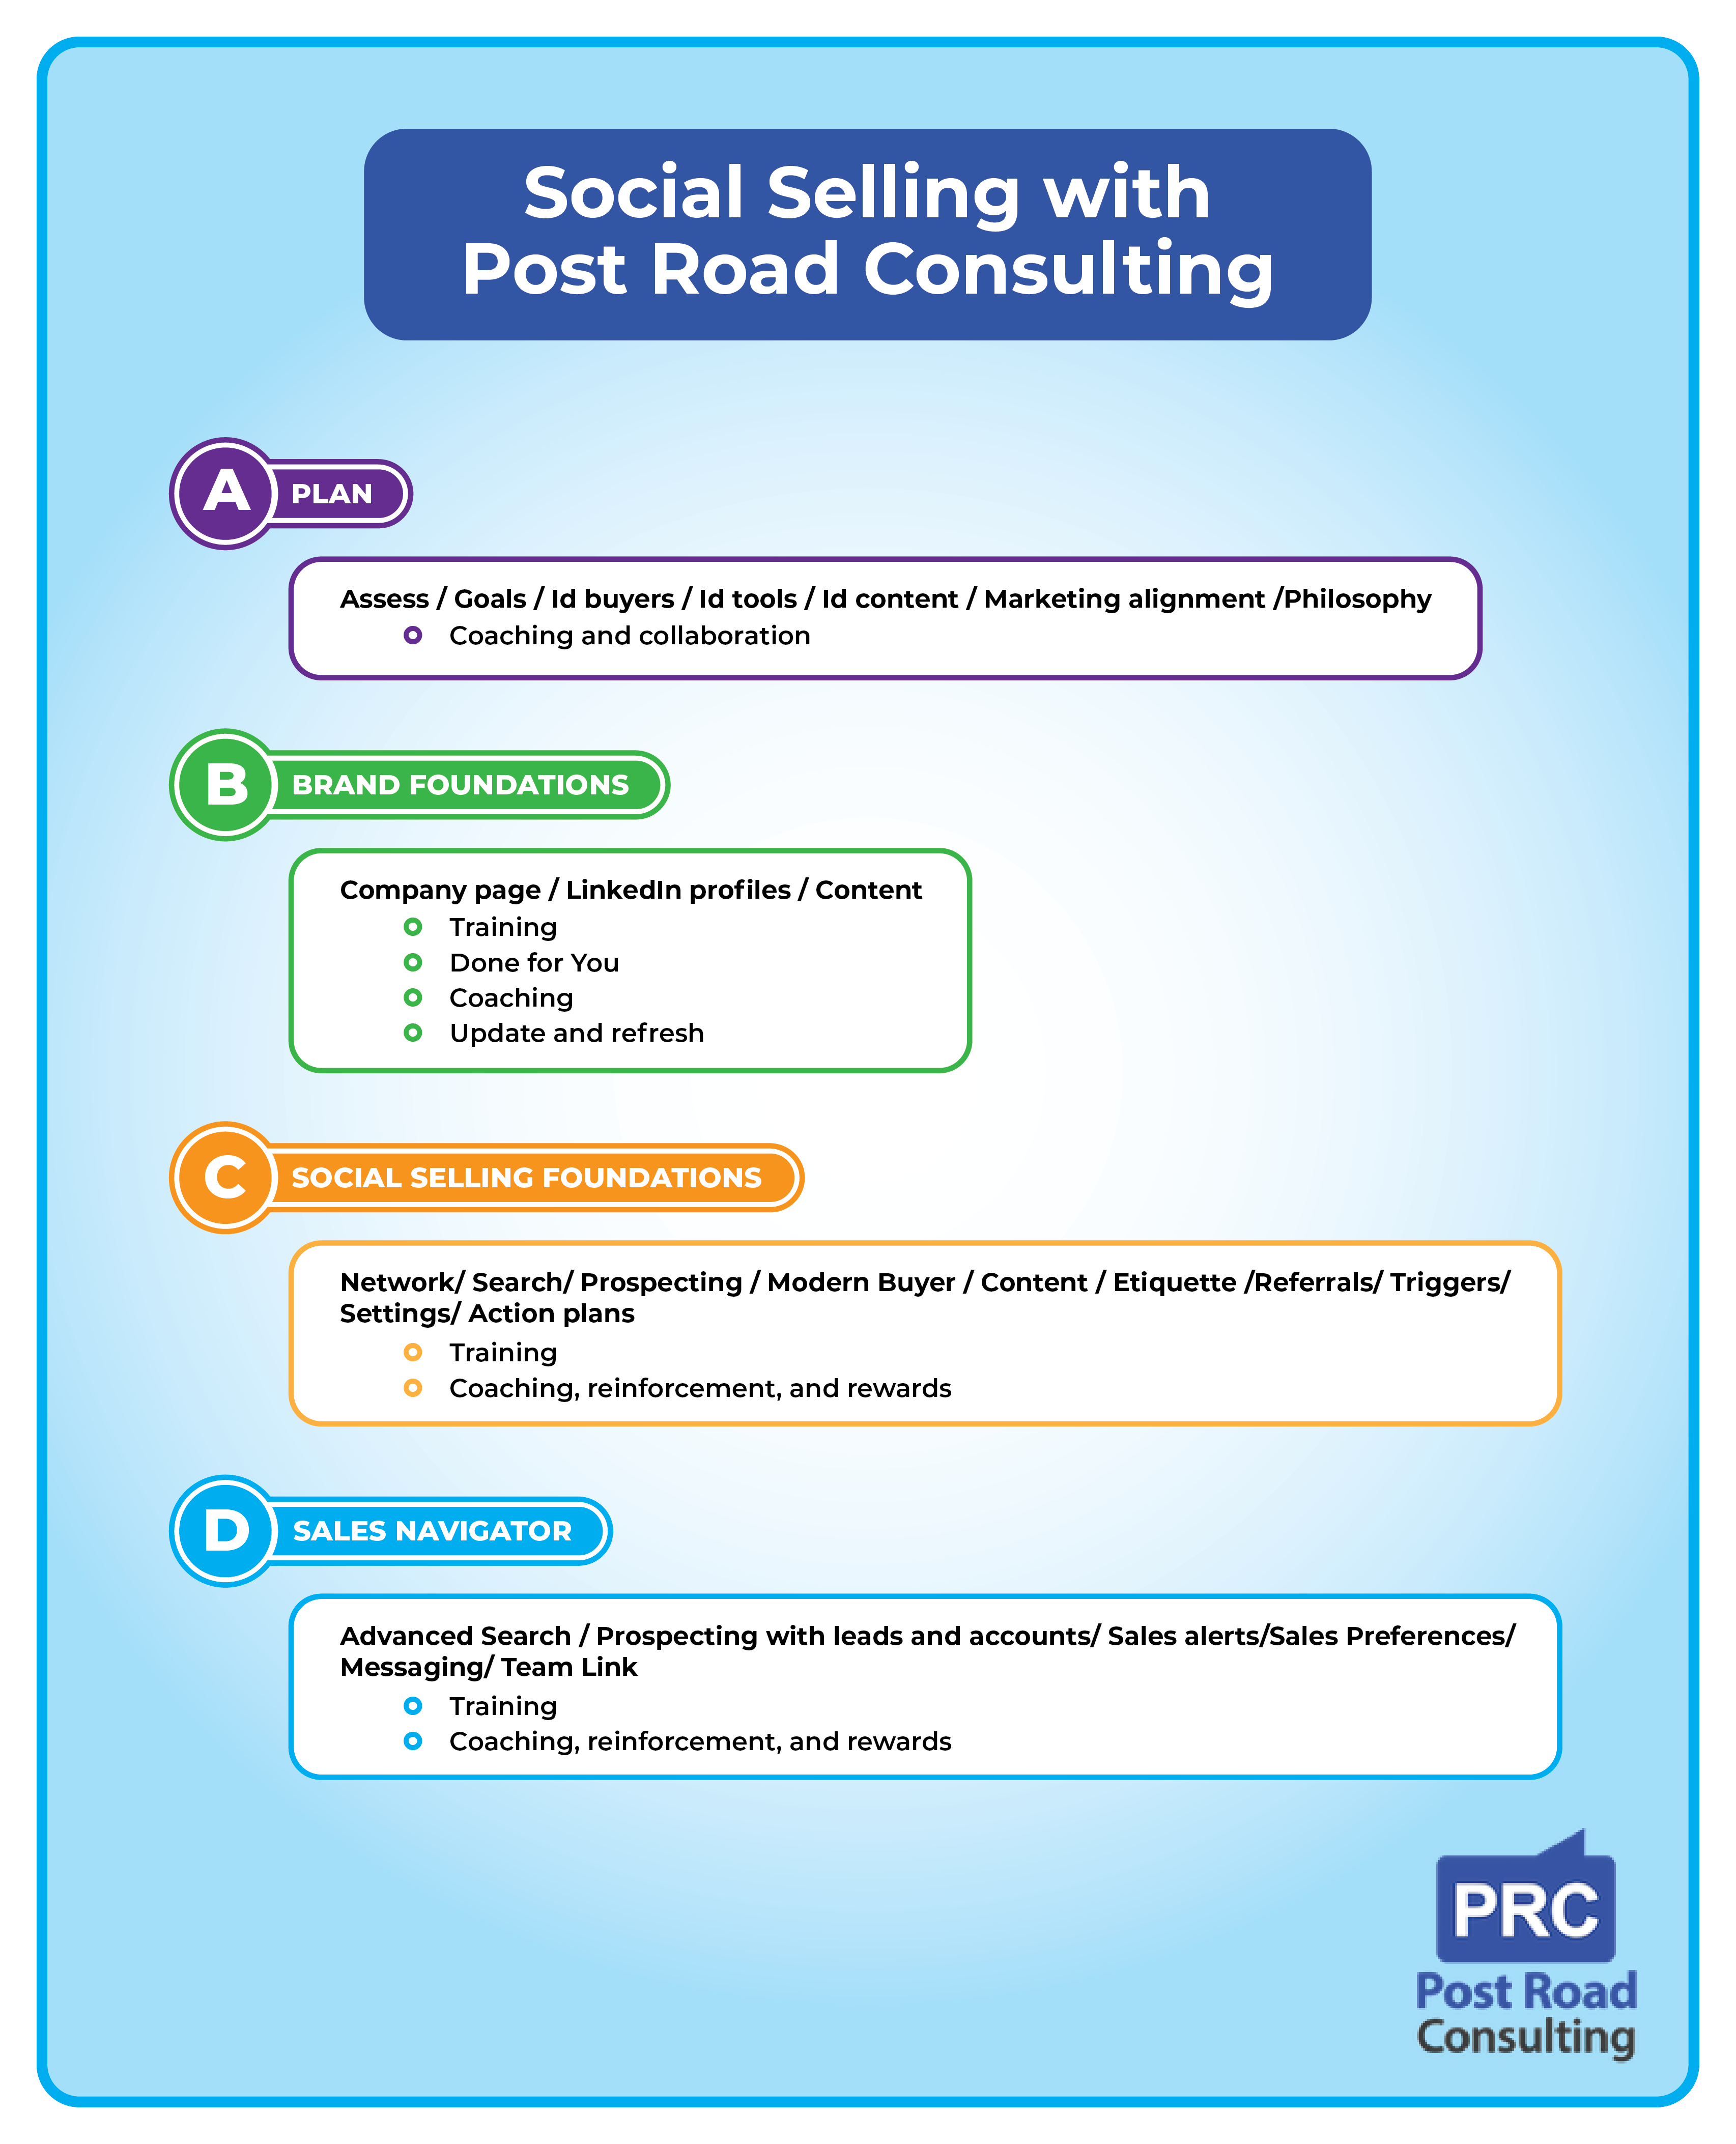 Social Selling With Post Road Consulting